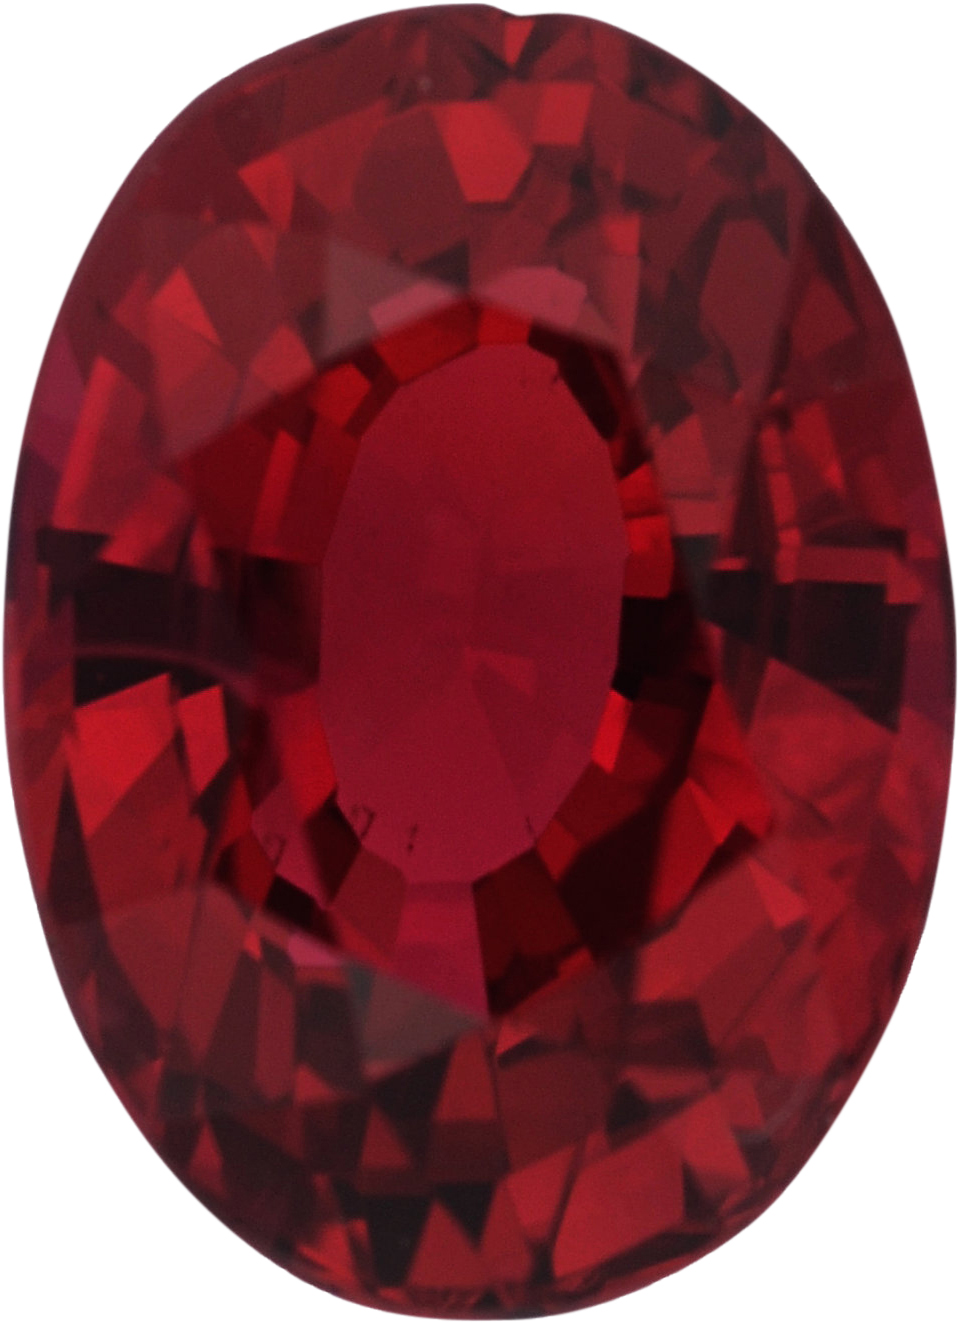 Hard to Find Oval Cut Loose Ruby Gem, Red Color, 6.83 x 4.97 mm, 1.12 carats